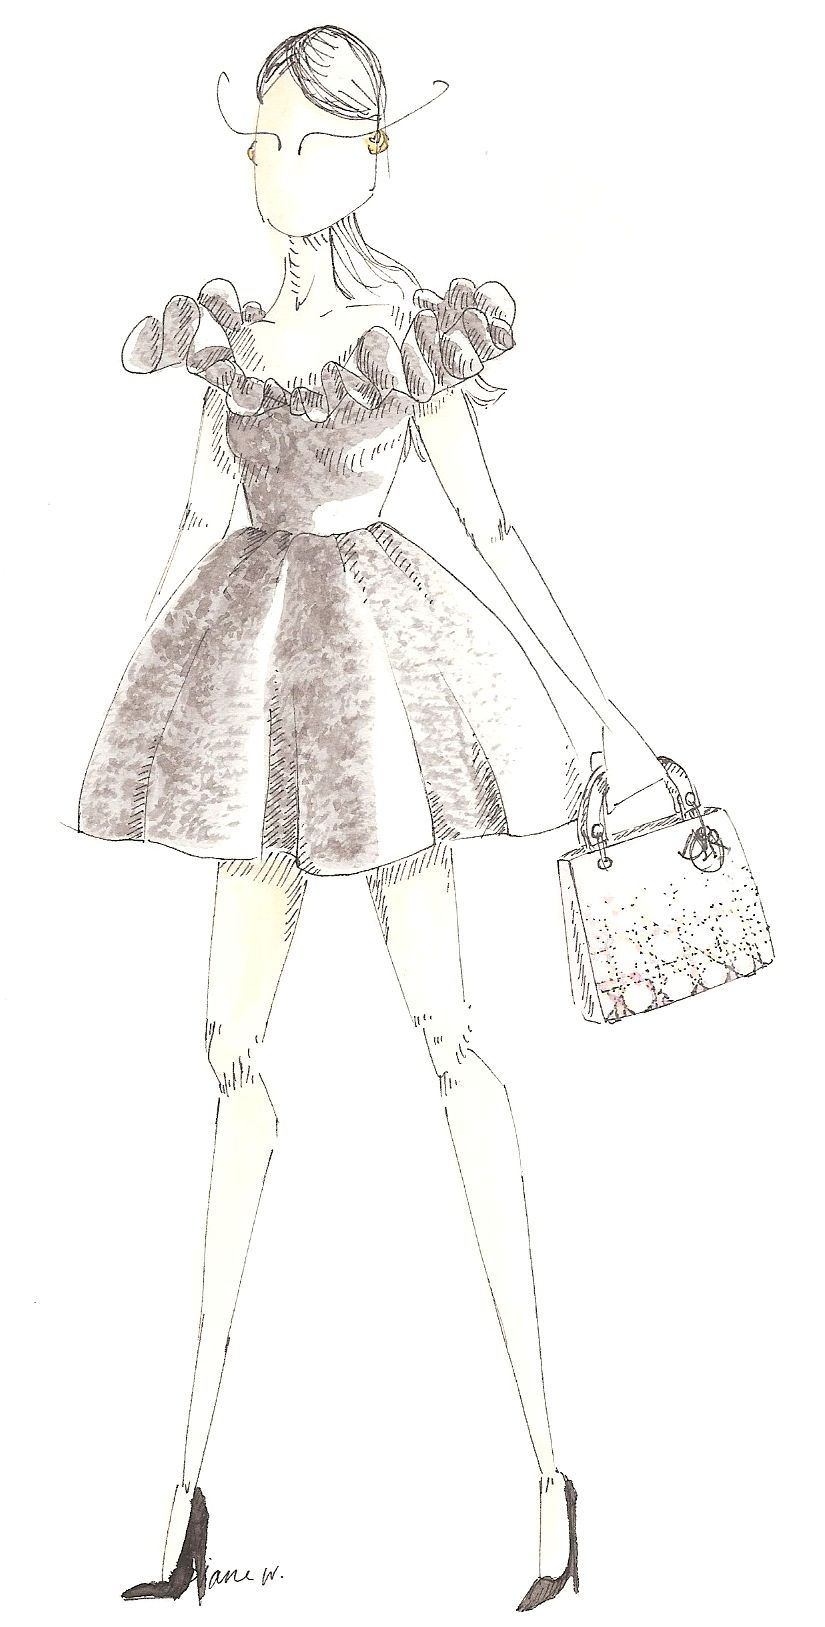 My vision of the #Dior woman, wearing a Lady Dior | 只愿你被